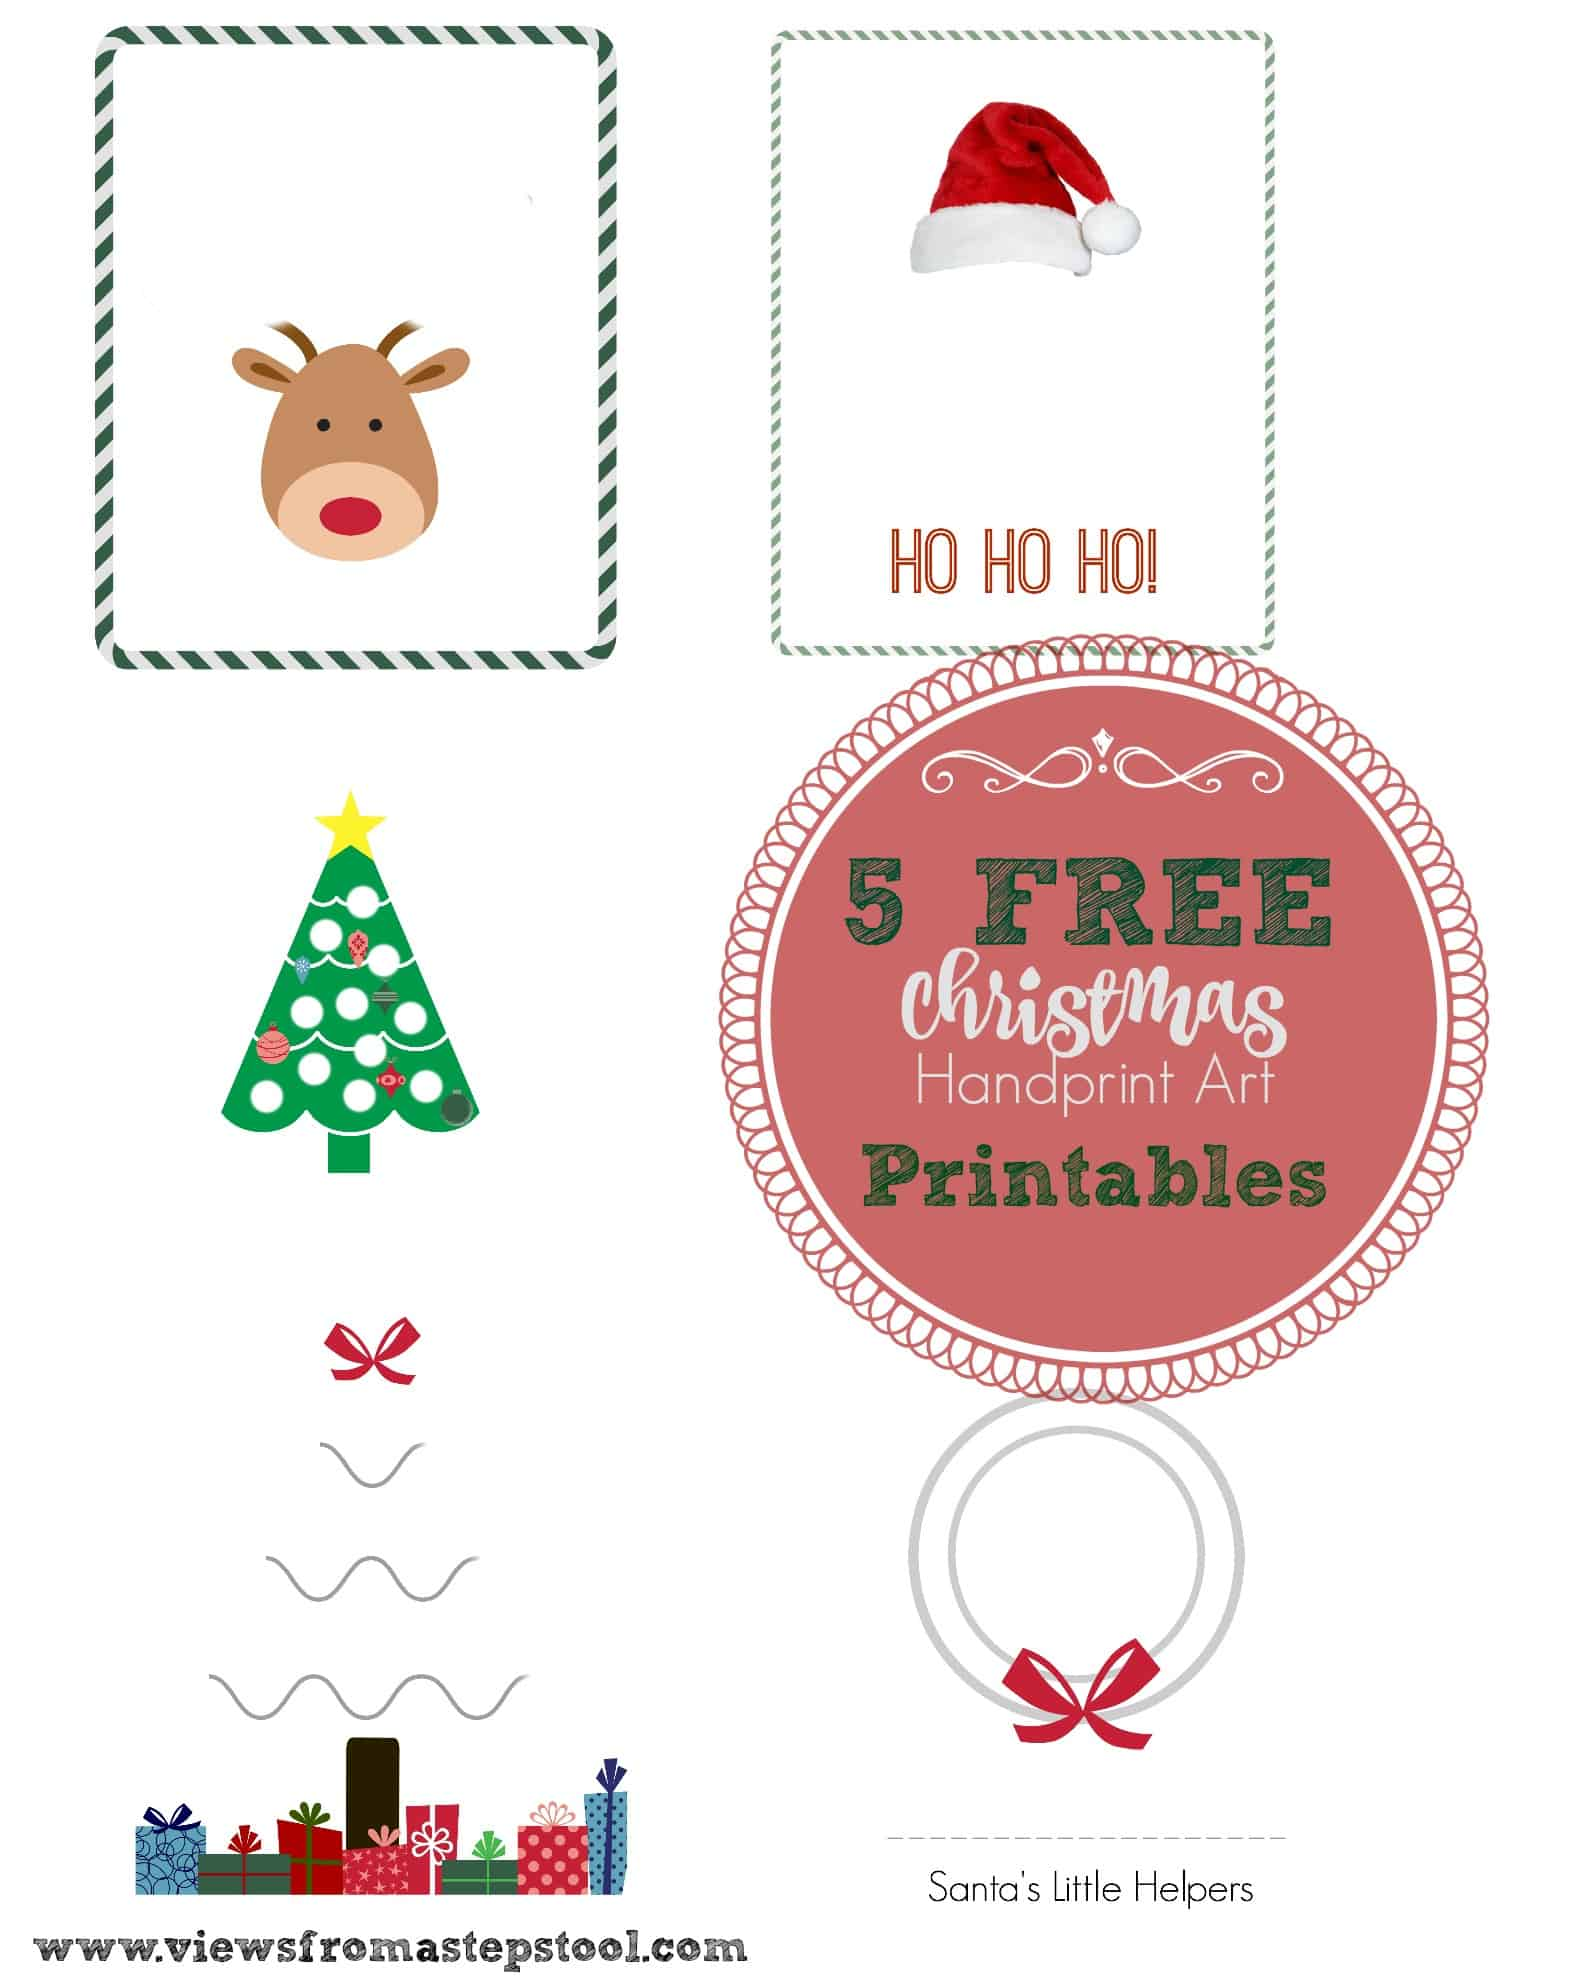 Ho ho holiday printouts to color - Check Out More Of Our Christmas Printables We Have Simple Worksheets And An Acts Of Kindness Calendar You Can